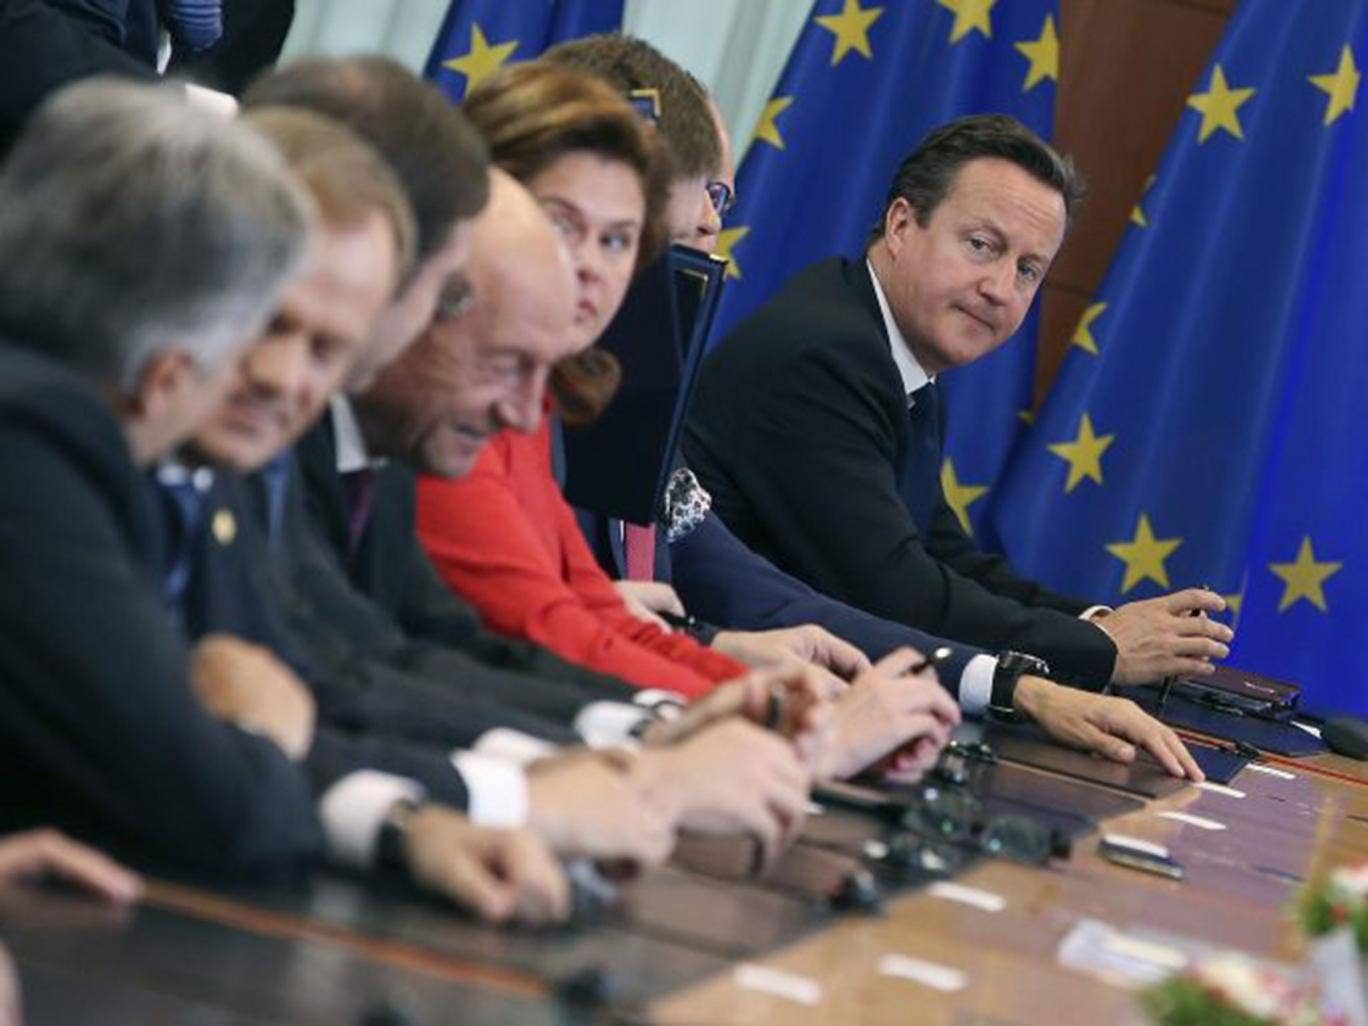 Cameron at the EU summit last week: he was doomed to try and fail in his mission to block the appointment of Juncker